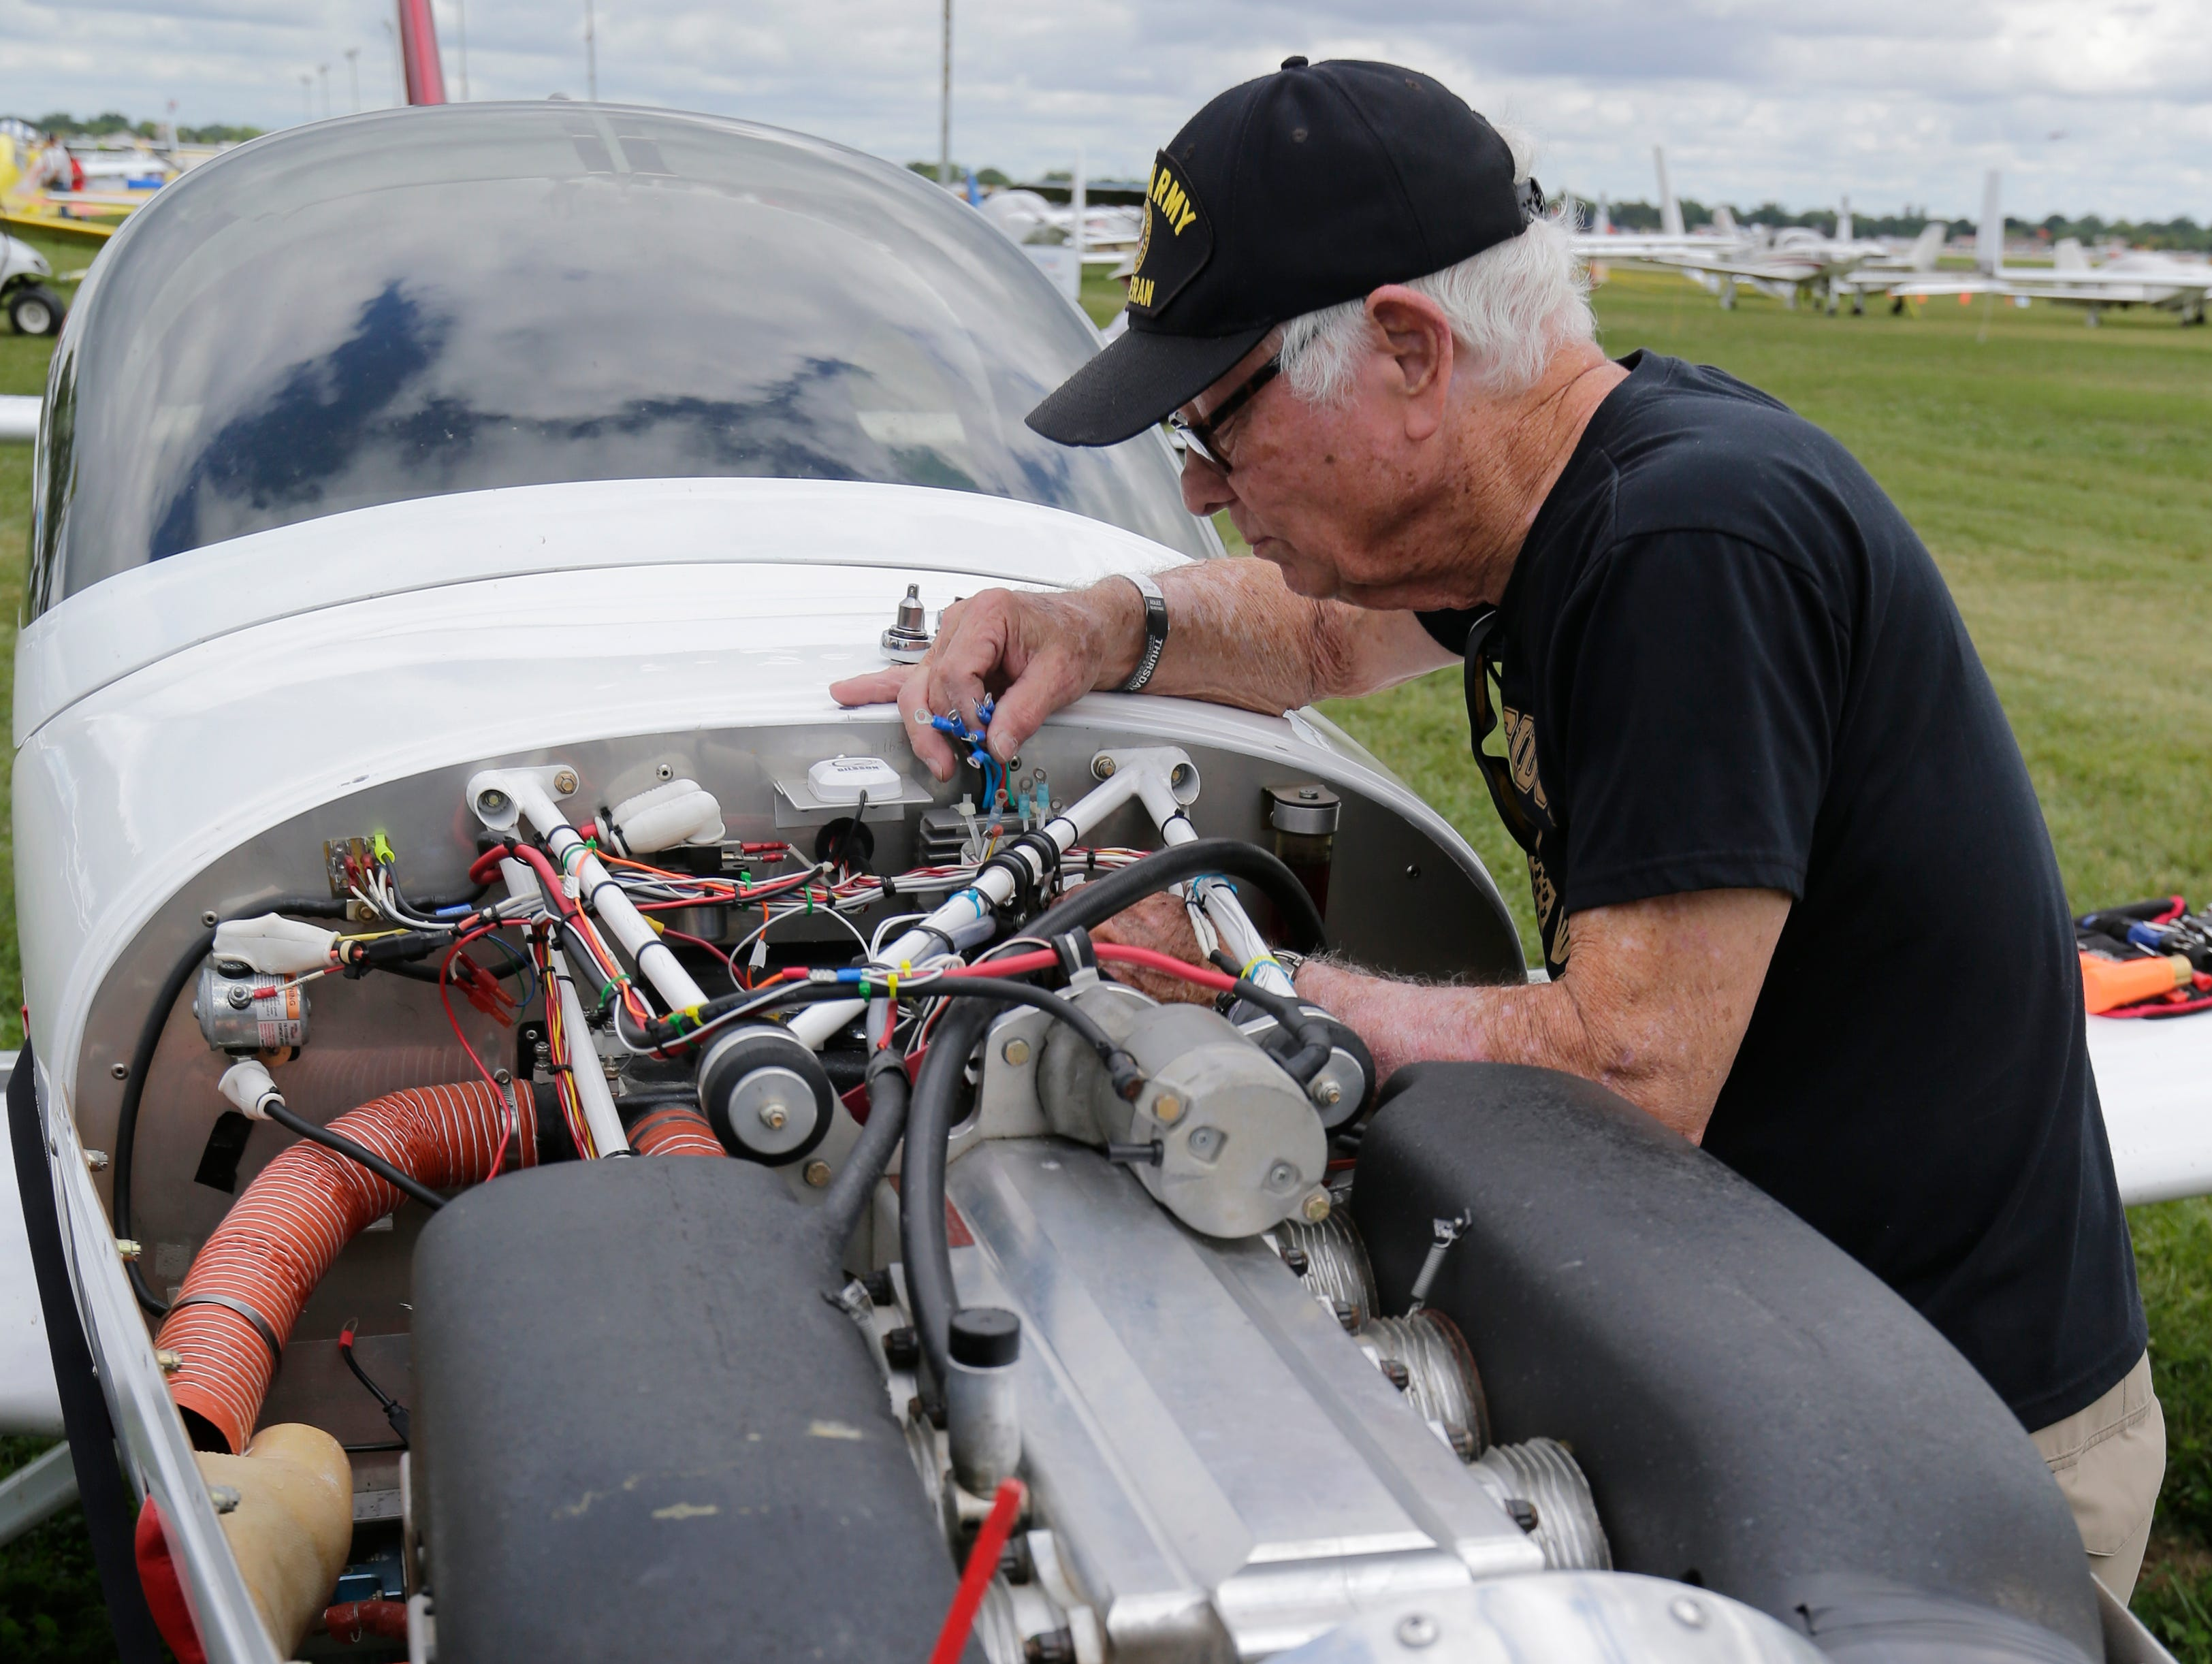 Joe Reaves of Longview, Tex., replaces the voltage regulator on his Arian Lightning, Thursday, July 26, 2018, in Oshkosh, Wis.  The 66th annual Experimental Aircraft Association Fly-In Convention, AirVenture 2018 draws over 500,000 people and over 10,000 planes from more than 70 nations annually to the area.  The convention runs through July 29.Joe Sienkiewicz/USA Today NETWORK-Wisconsin